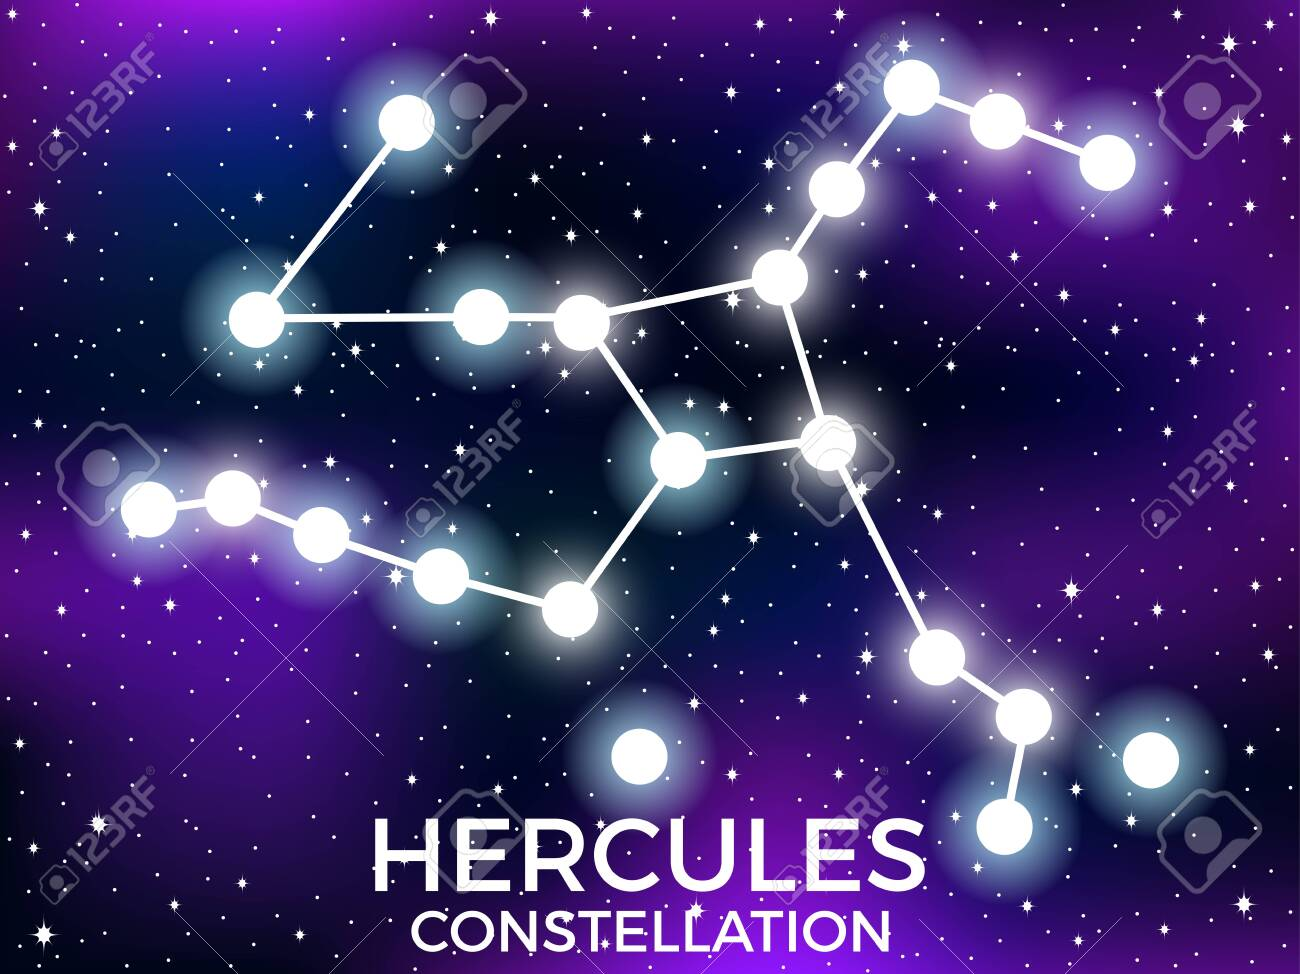 Hercules Constellation Starry Night Sky Cluster Of Stars And